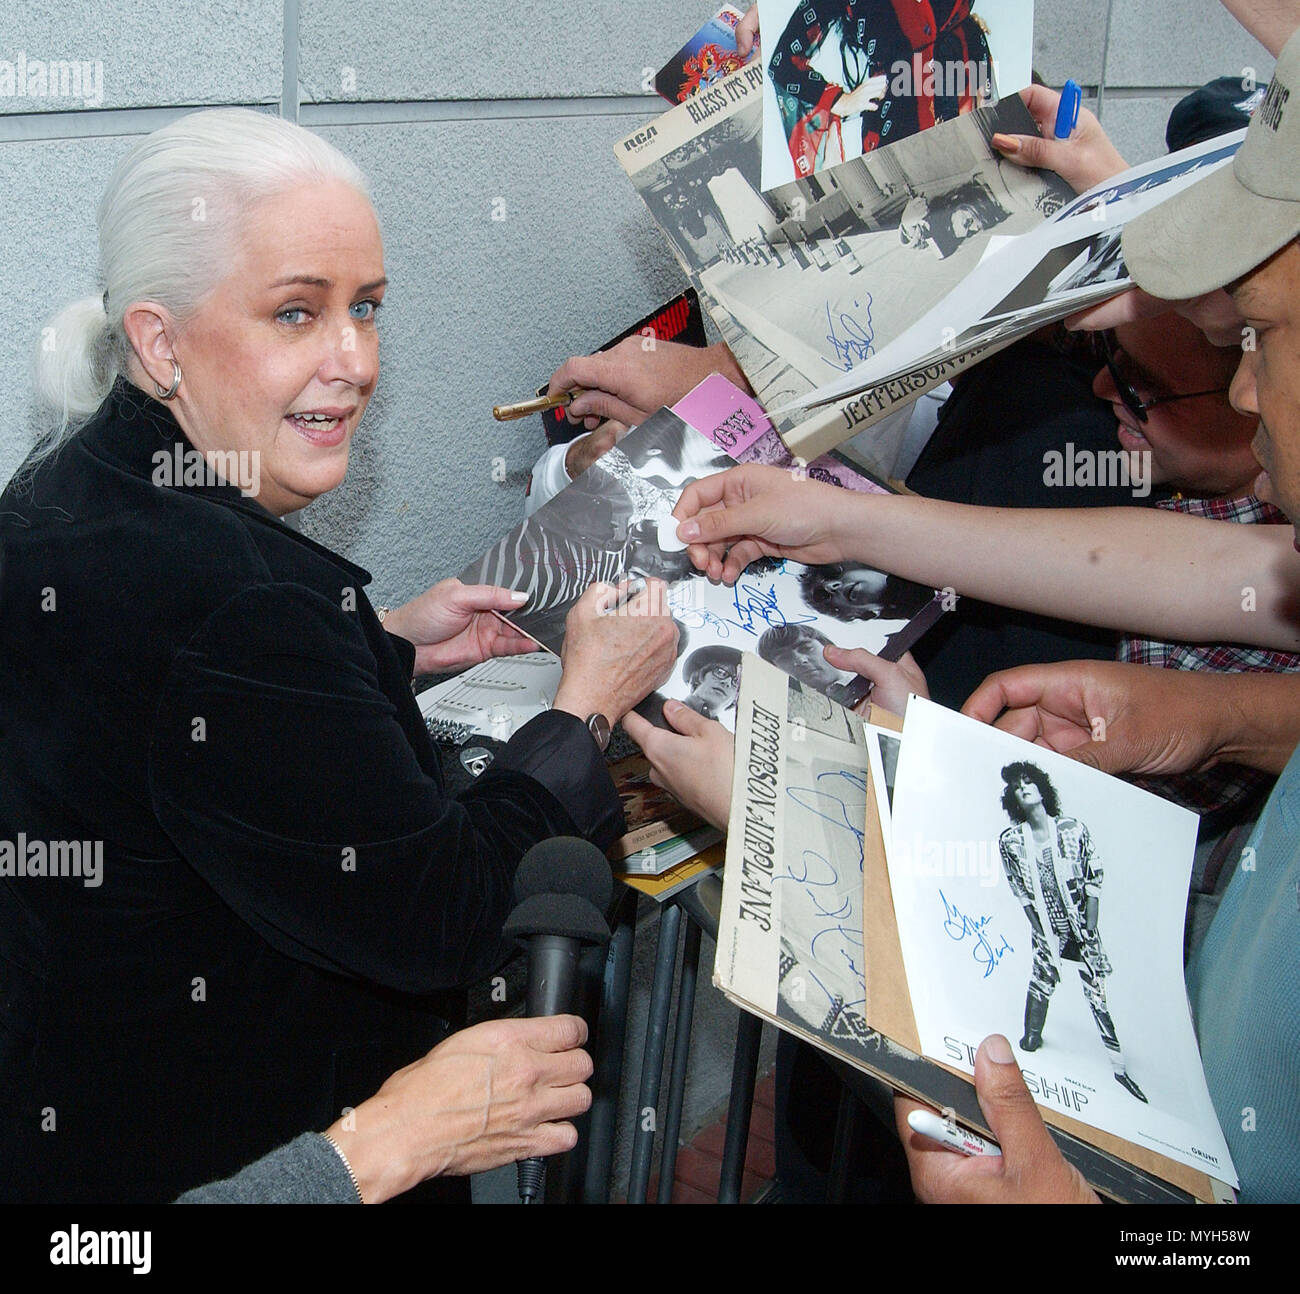 Grace Slick signing authograph after been inducted on the Rock Walk of Fame at the Guitar Center in Los Angeles. October 22, 2002.            -            GraceSlick_RockWalkOfFame03.jpgGraceSlick_RockWalkOfFame03  Event in Hollywood Life - California, Red Carpet Event, USA, Film Industry, Celebrities, Photography, Bestof, Arts Culture and Entertainment, Topix Celebrities fashion, Best of, Hollywood Life, Event in Hollywood Life - California, movie celebrities, TV celebrities, Music celebrities, Topix, Bestof, Arts Culture and Entertainment, Photography,    inquiry tsuni@Gamma-USA.com , Credit - Stock Image